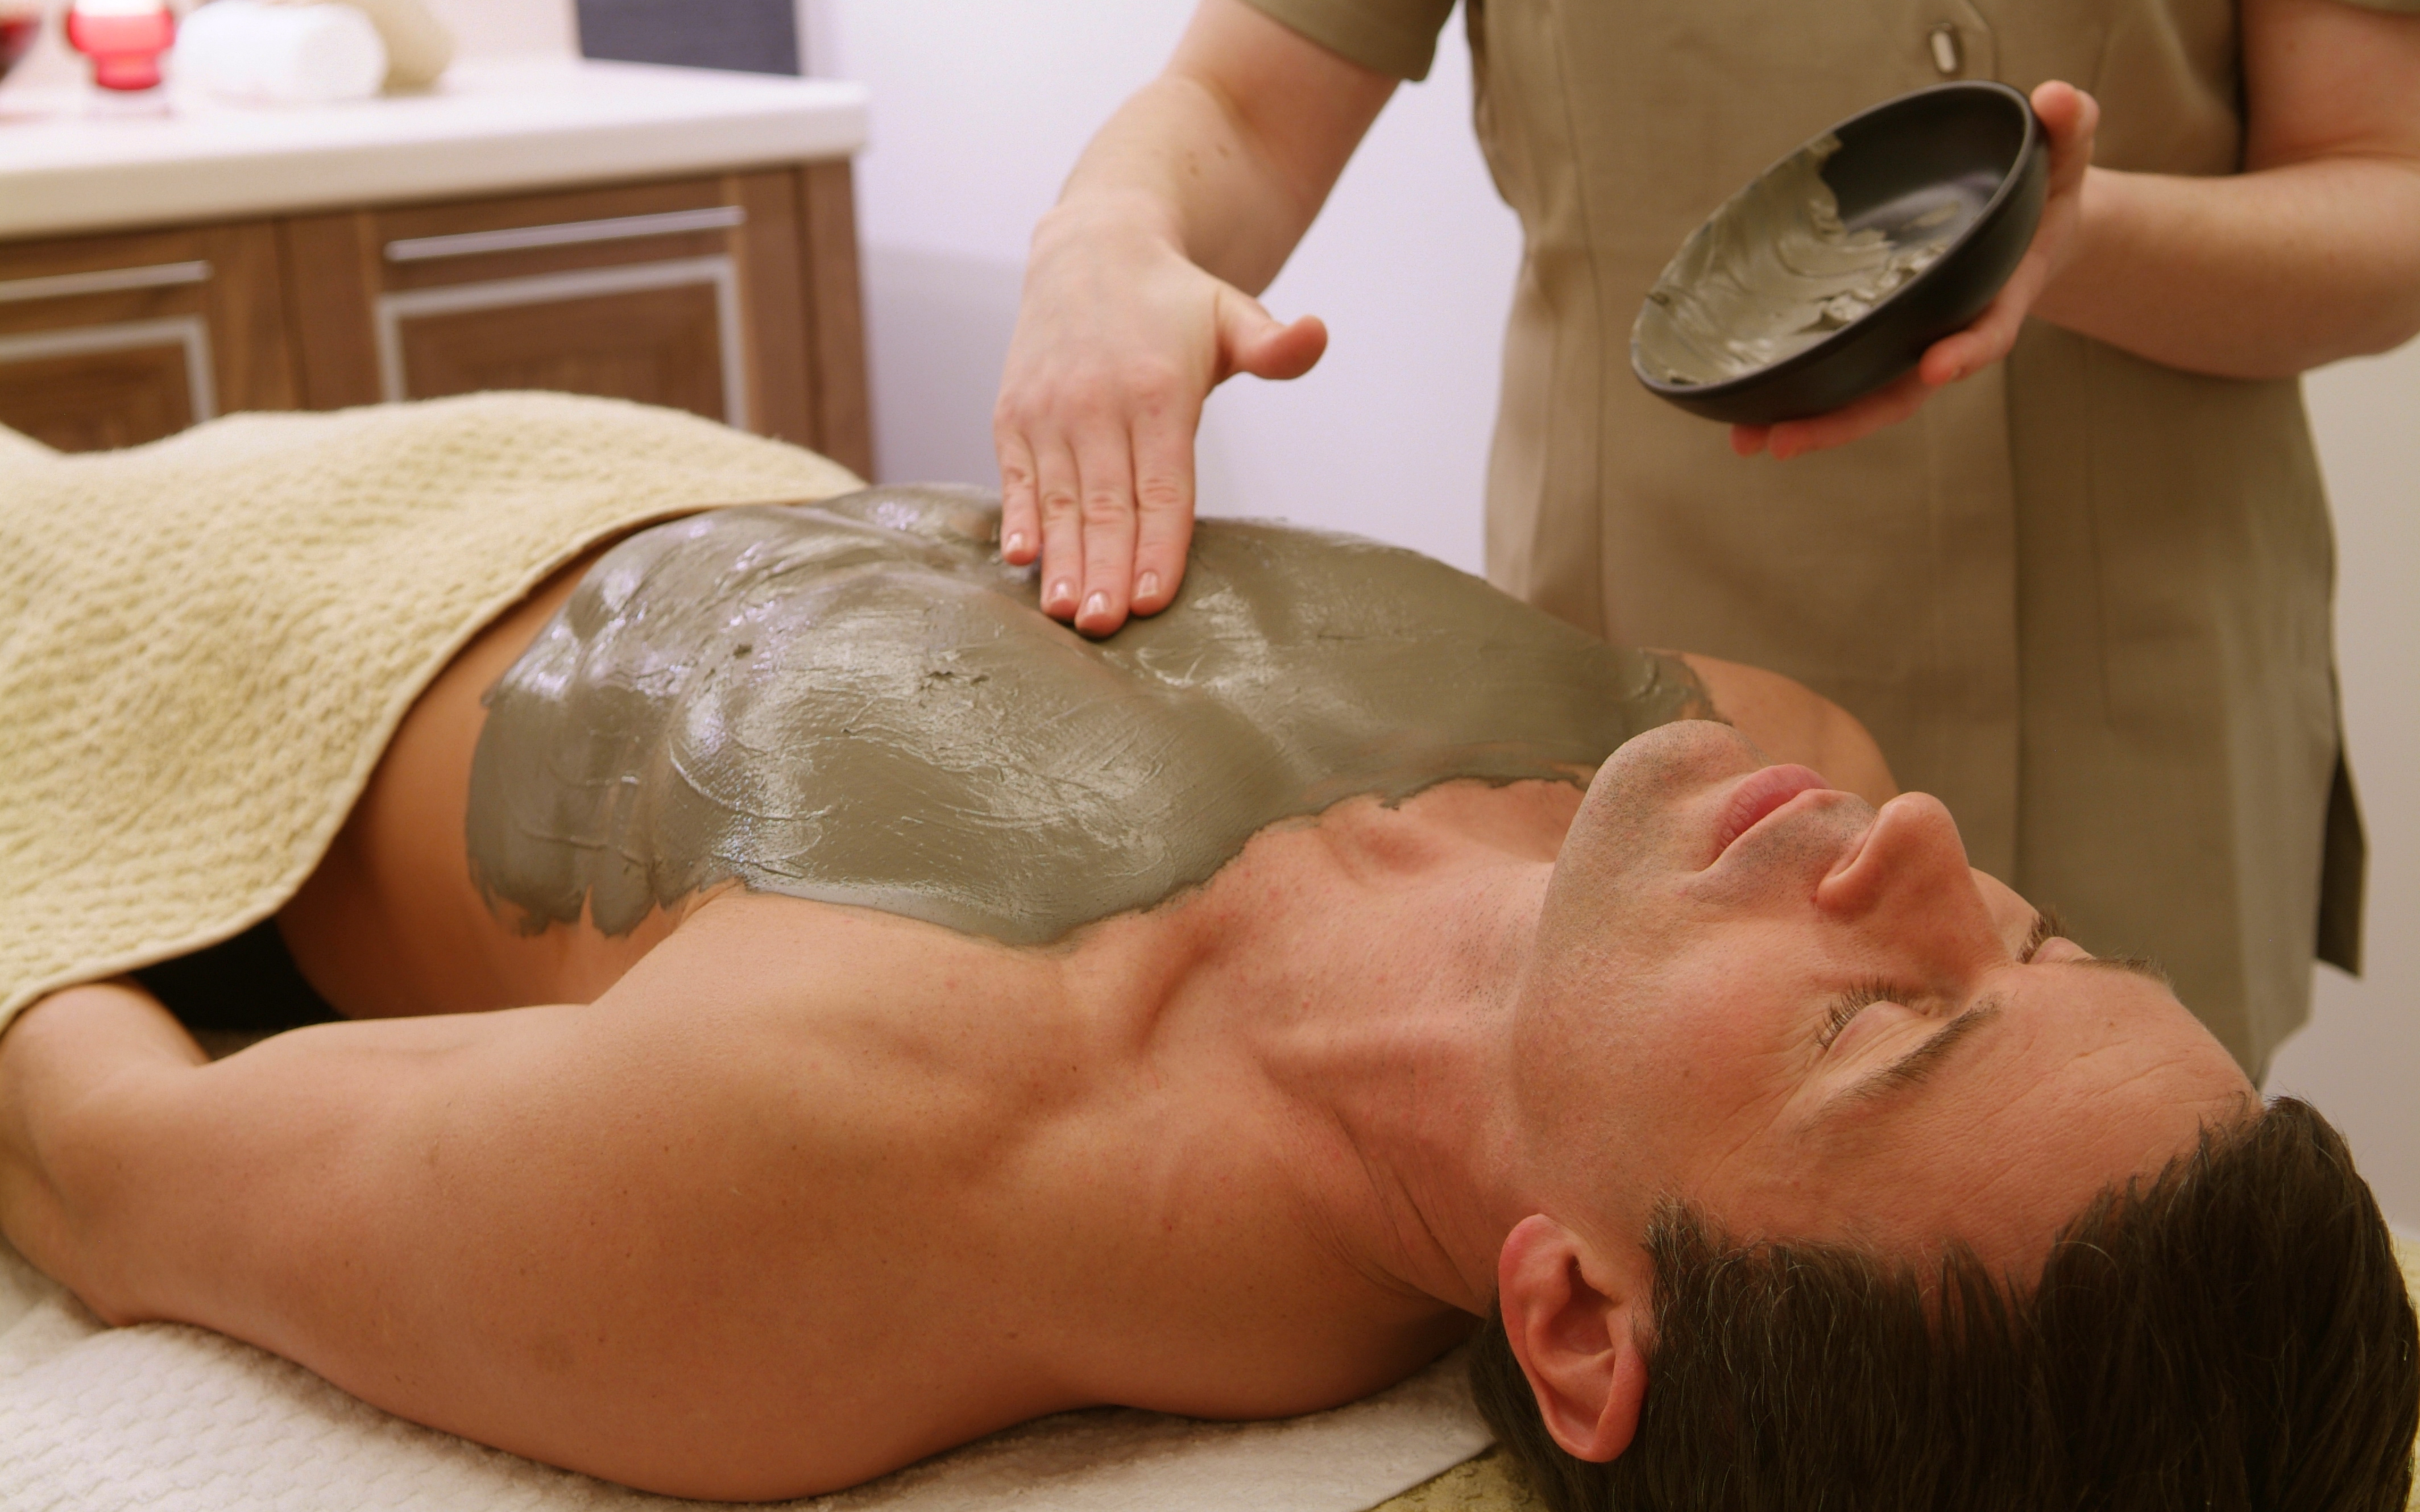 spa thesis on spa body treatments If you're on medication and you're not certain about contraindications from some of the spa treatments, products used, or some of the spa amenities (sauna, whirlpool, steam room, etc) and how it.